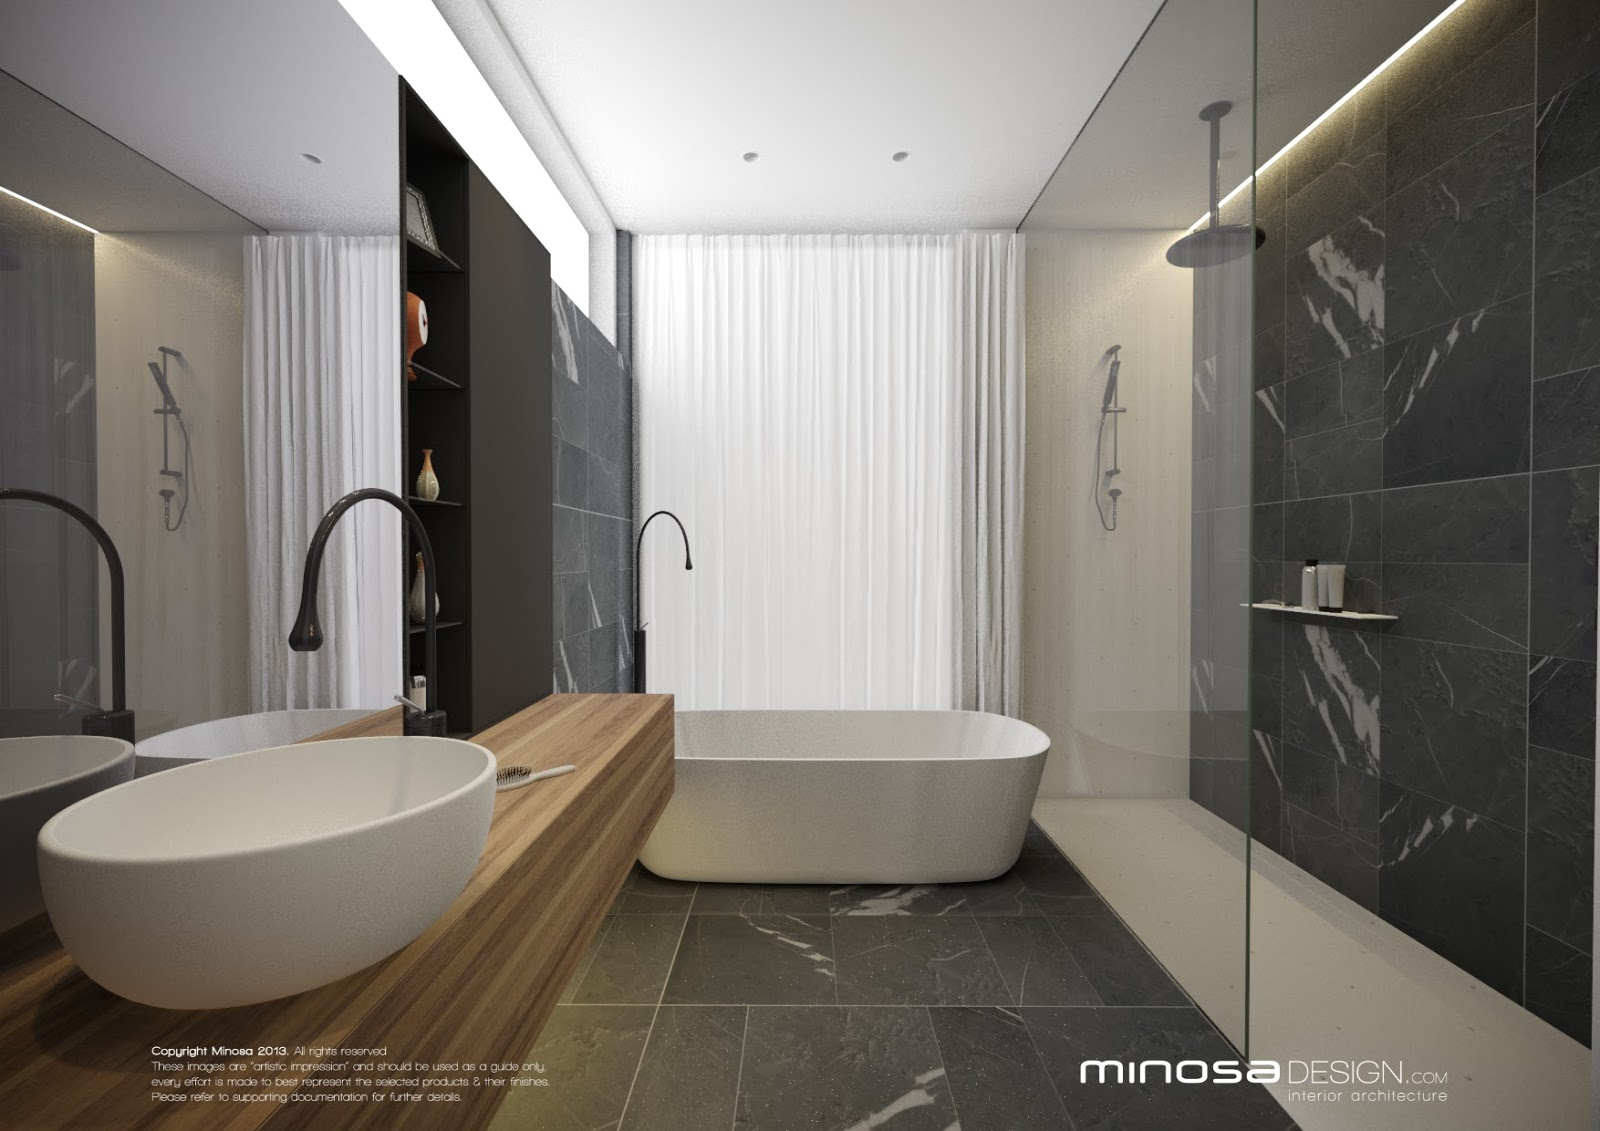 Minosa modern bathroom design to share for Create a bathroom design online